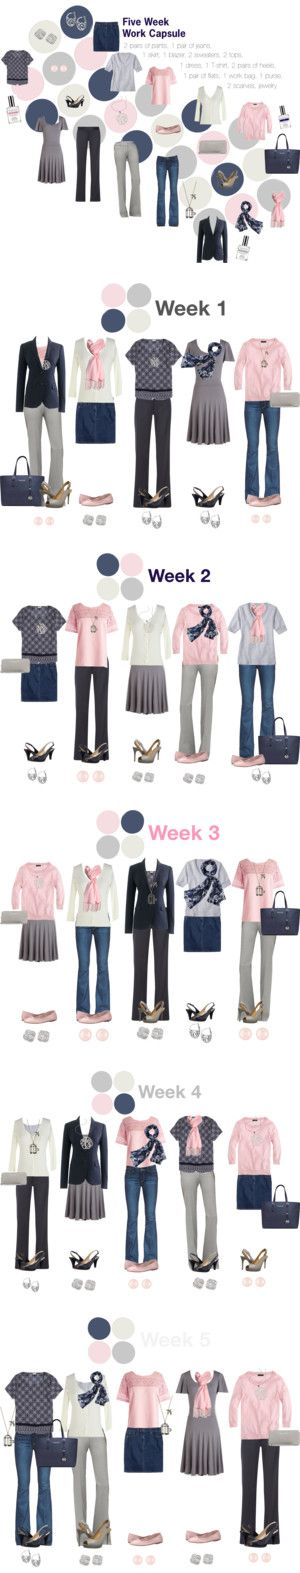 """Work Capsule Wardrobe: Pink, Grey & Navy"" by kristin727 on Polyvore"